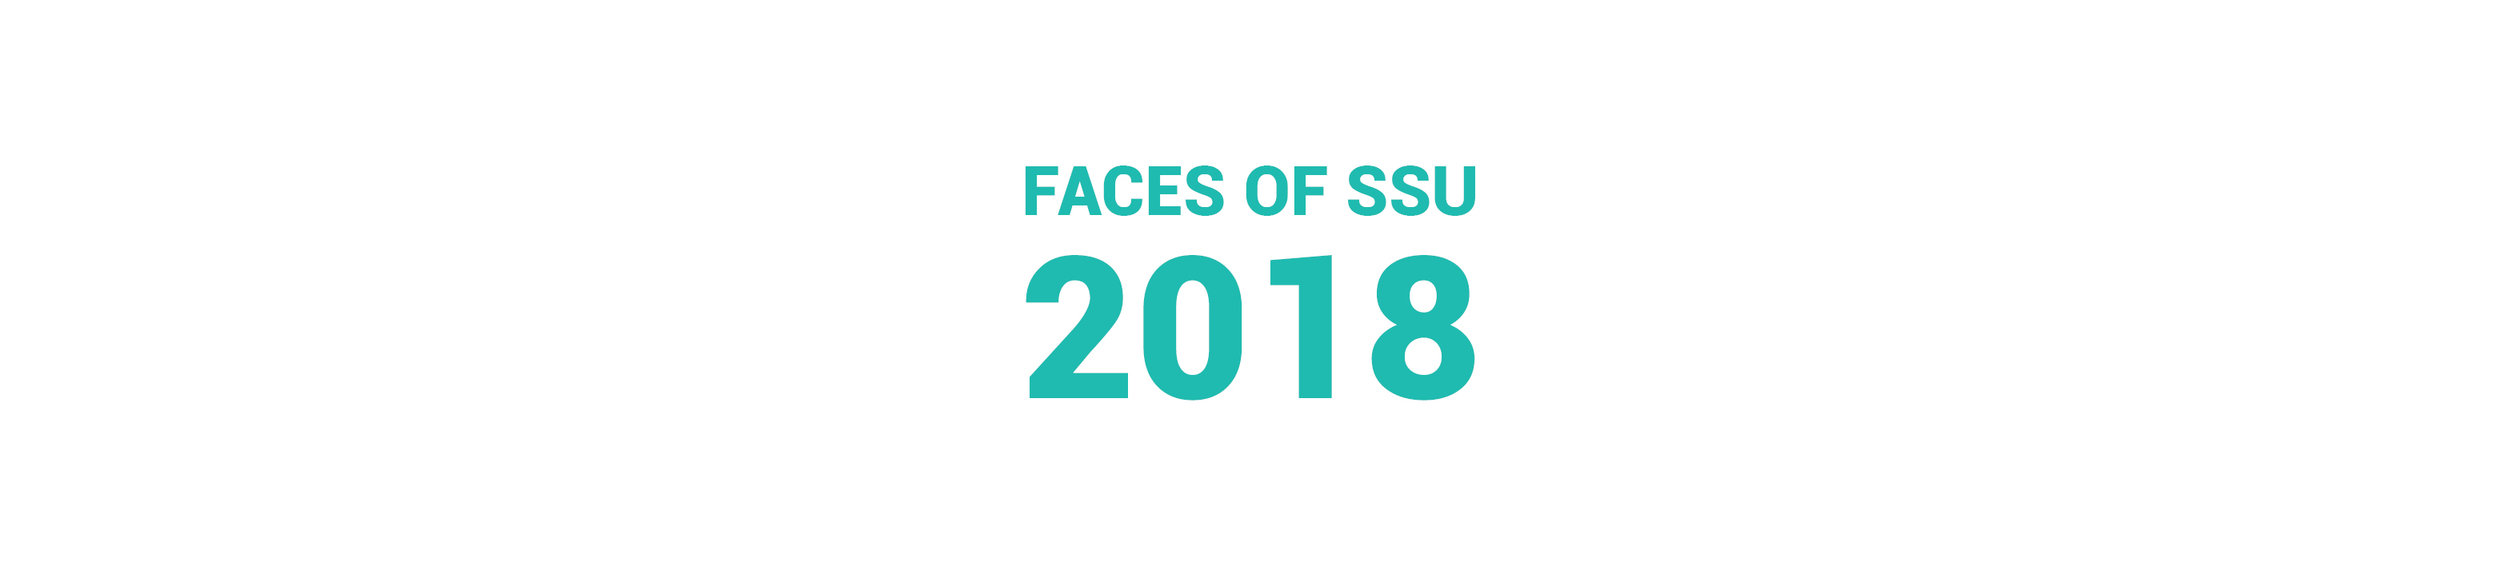 Faces of SSU Logo